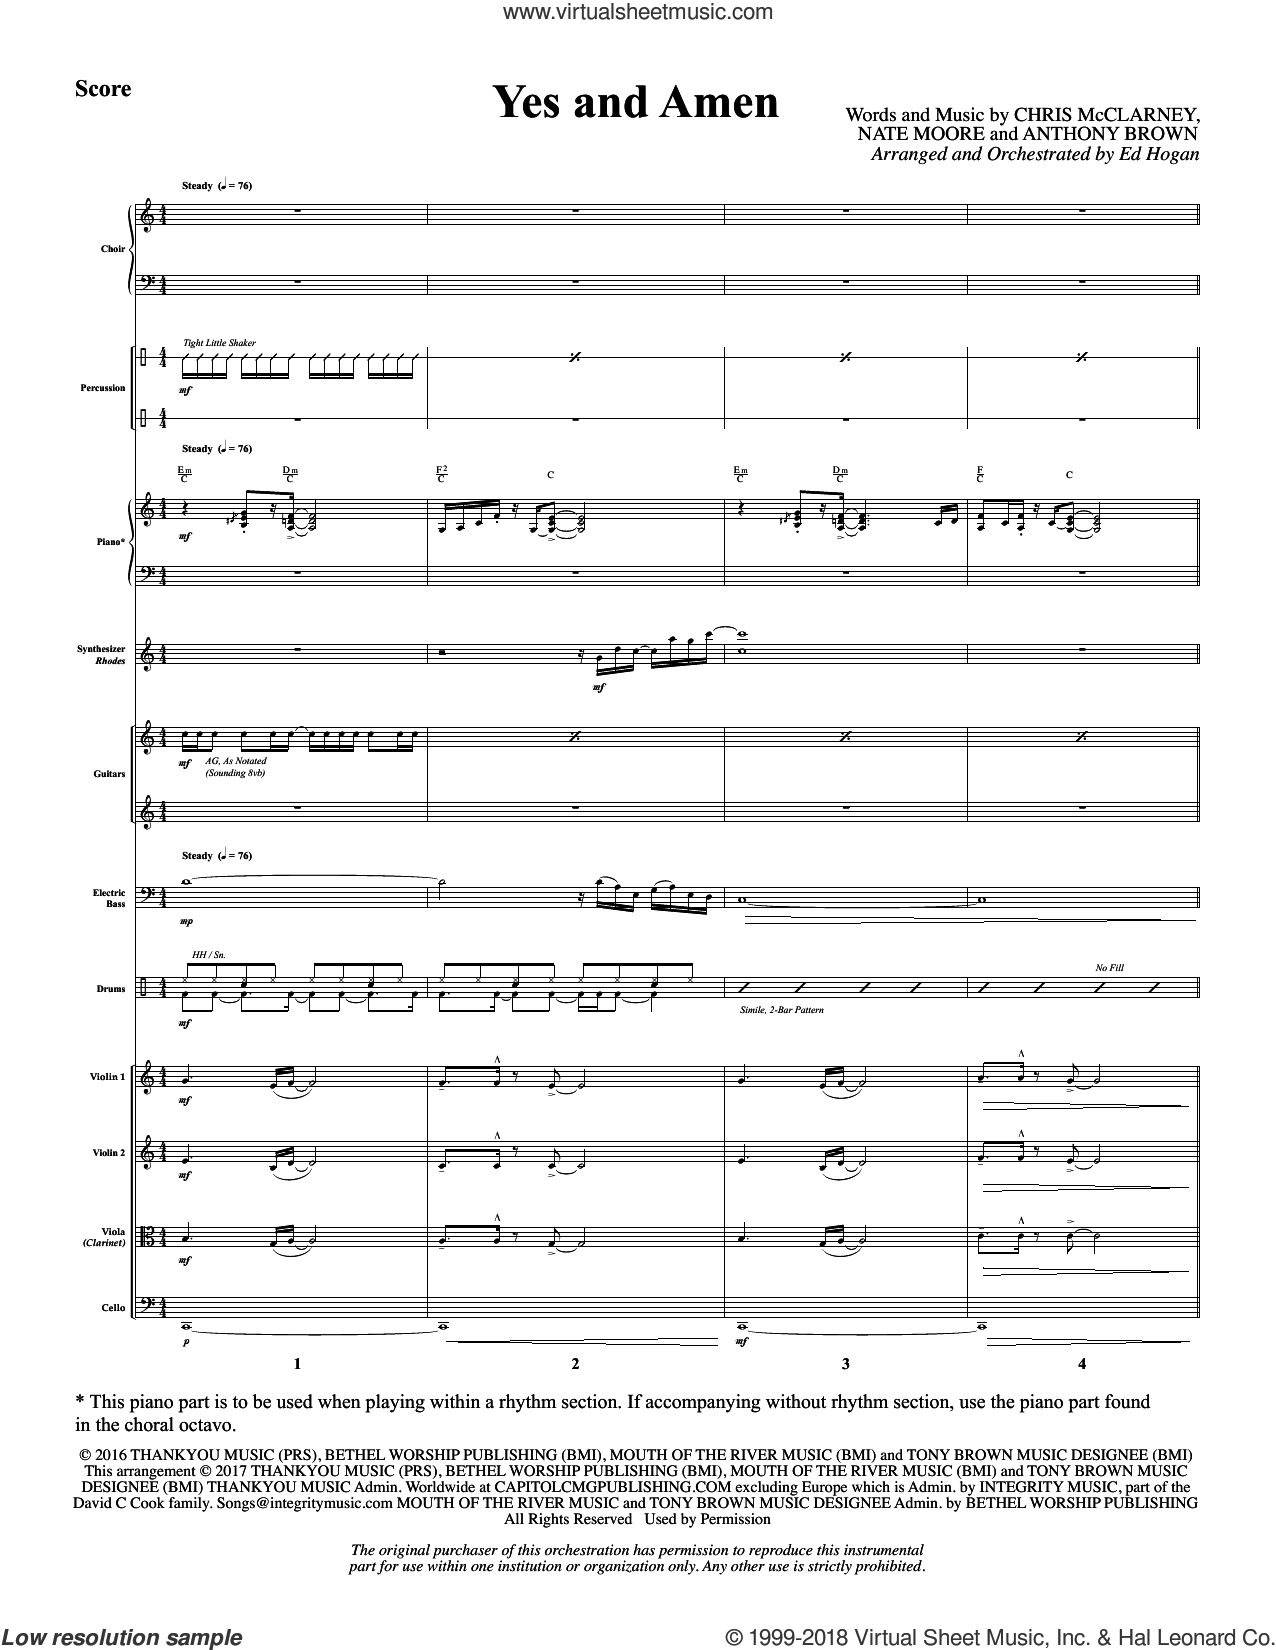 Yes and Amen (COMPLETE) sheet music for orchestra/band by Ed Hogan, Anthony Brown, Chris McClarney, Chris Tomlin and Nate Moore, intermediate skill level